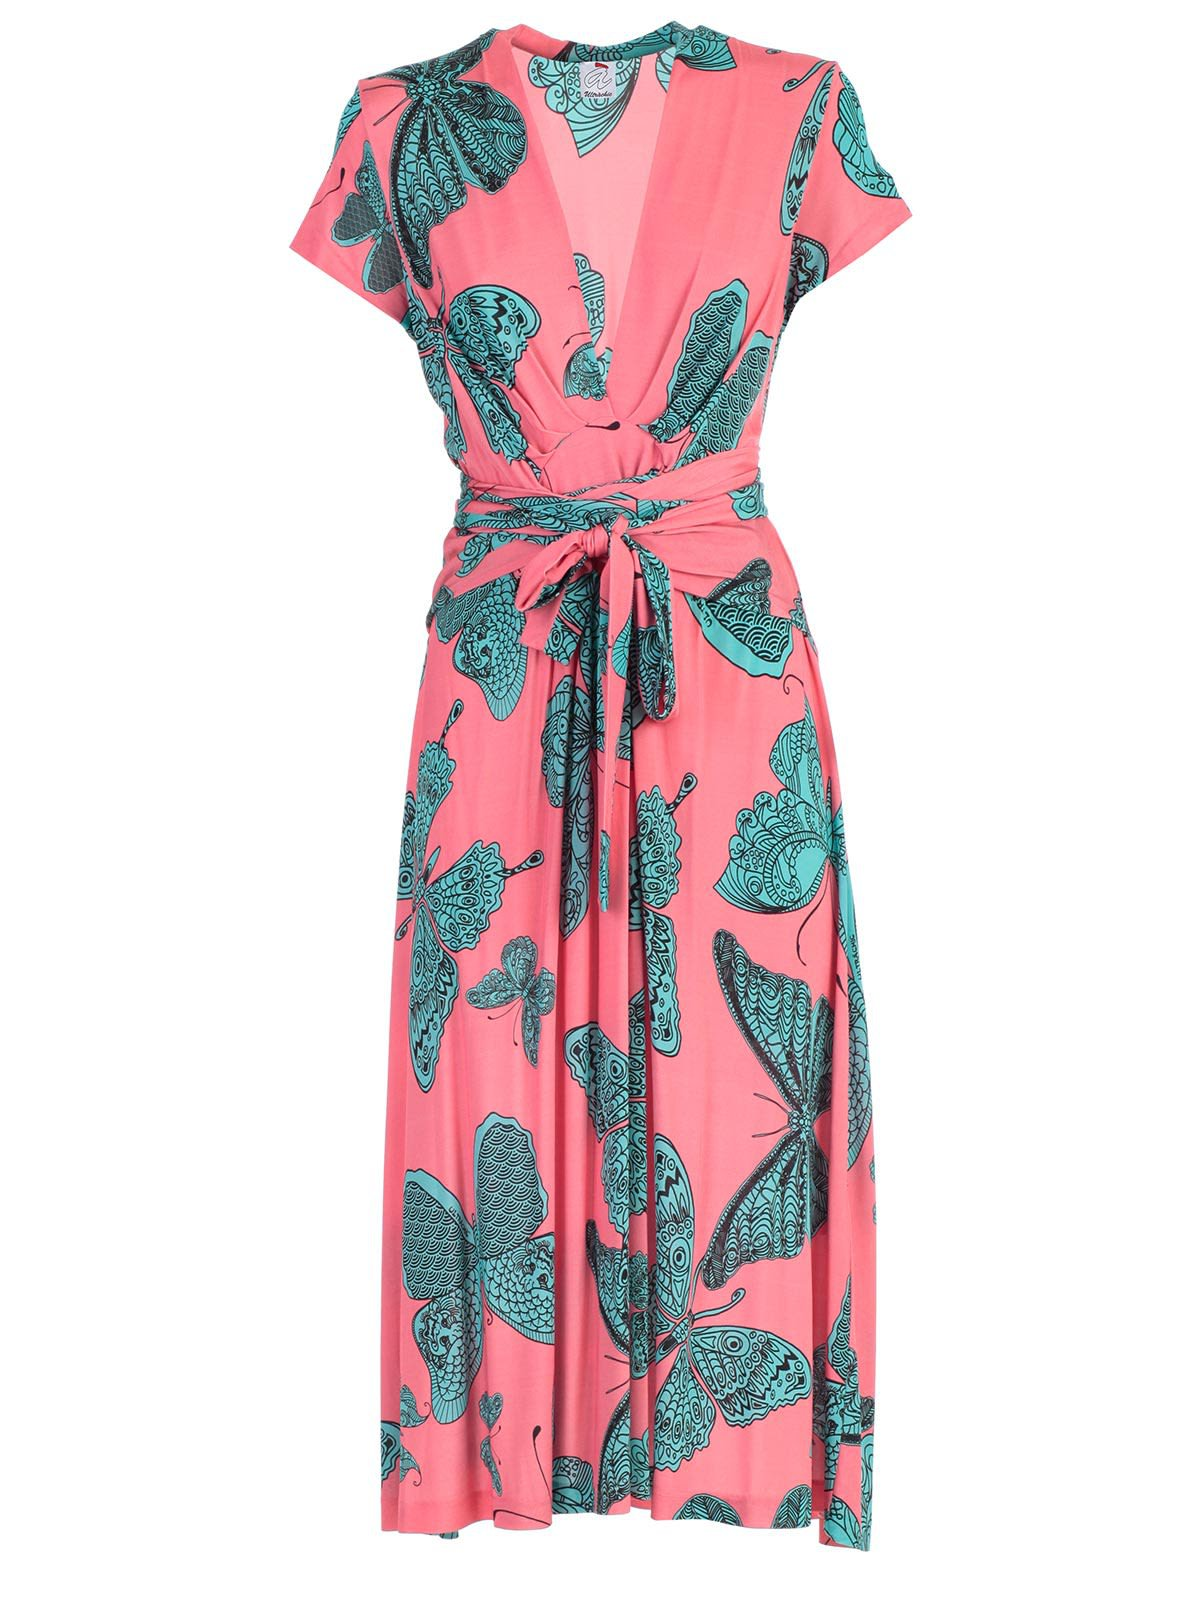 Ultrachic Butterfly Print Wrap Dress